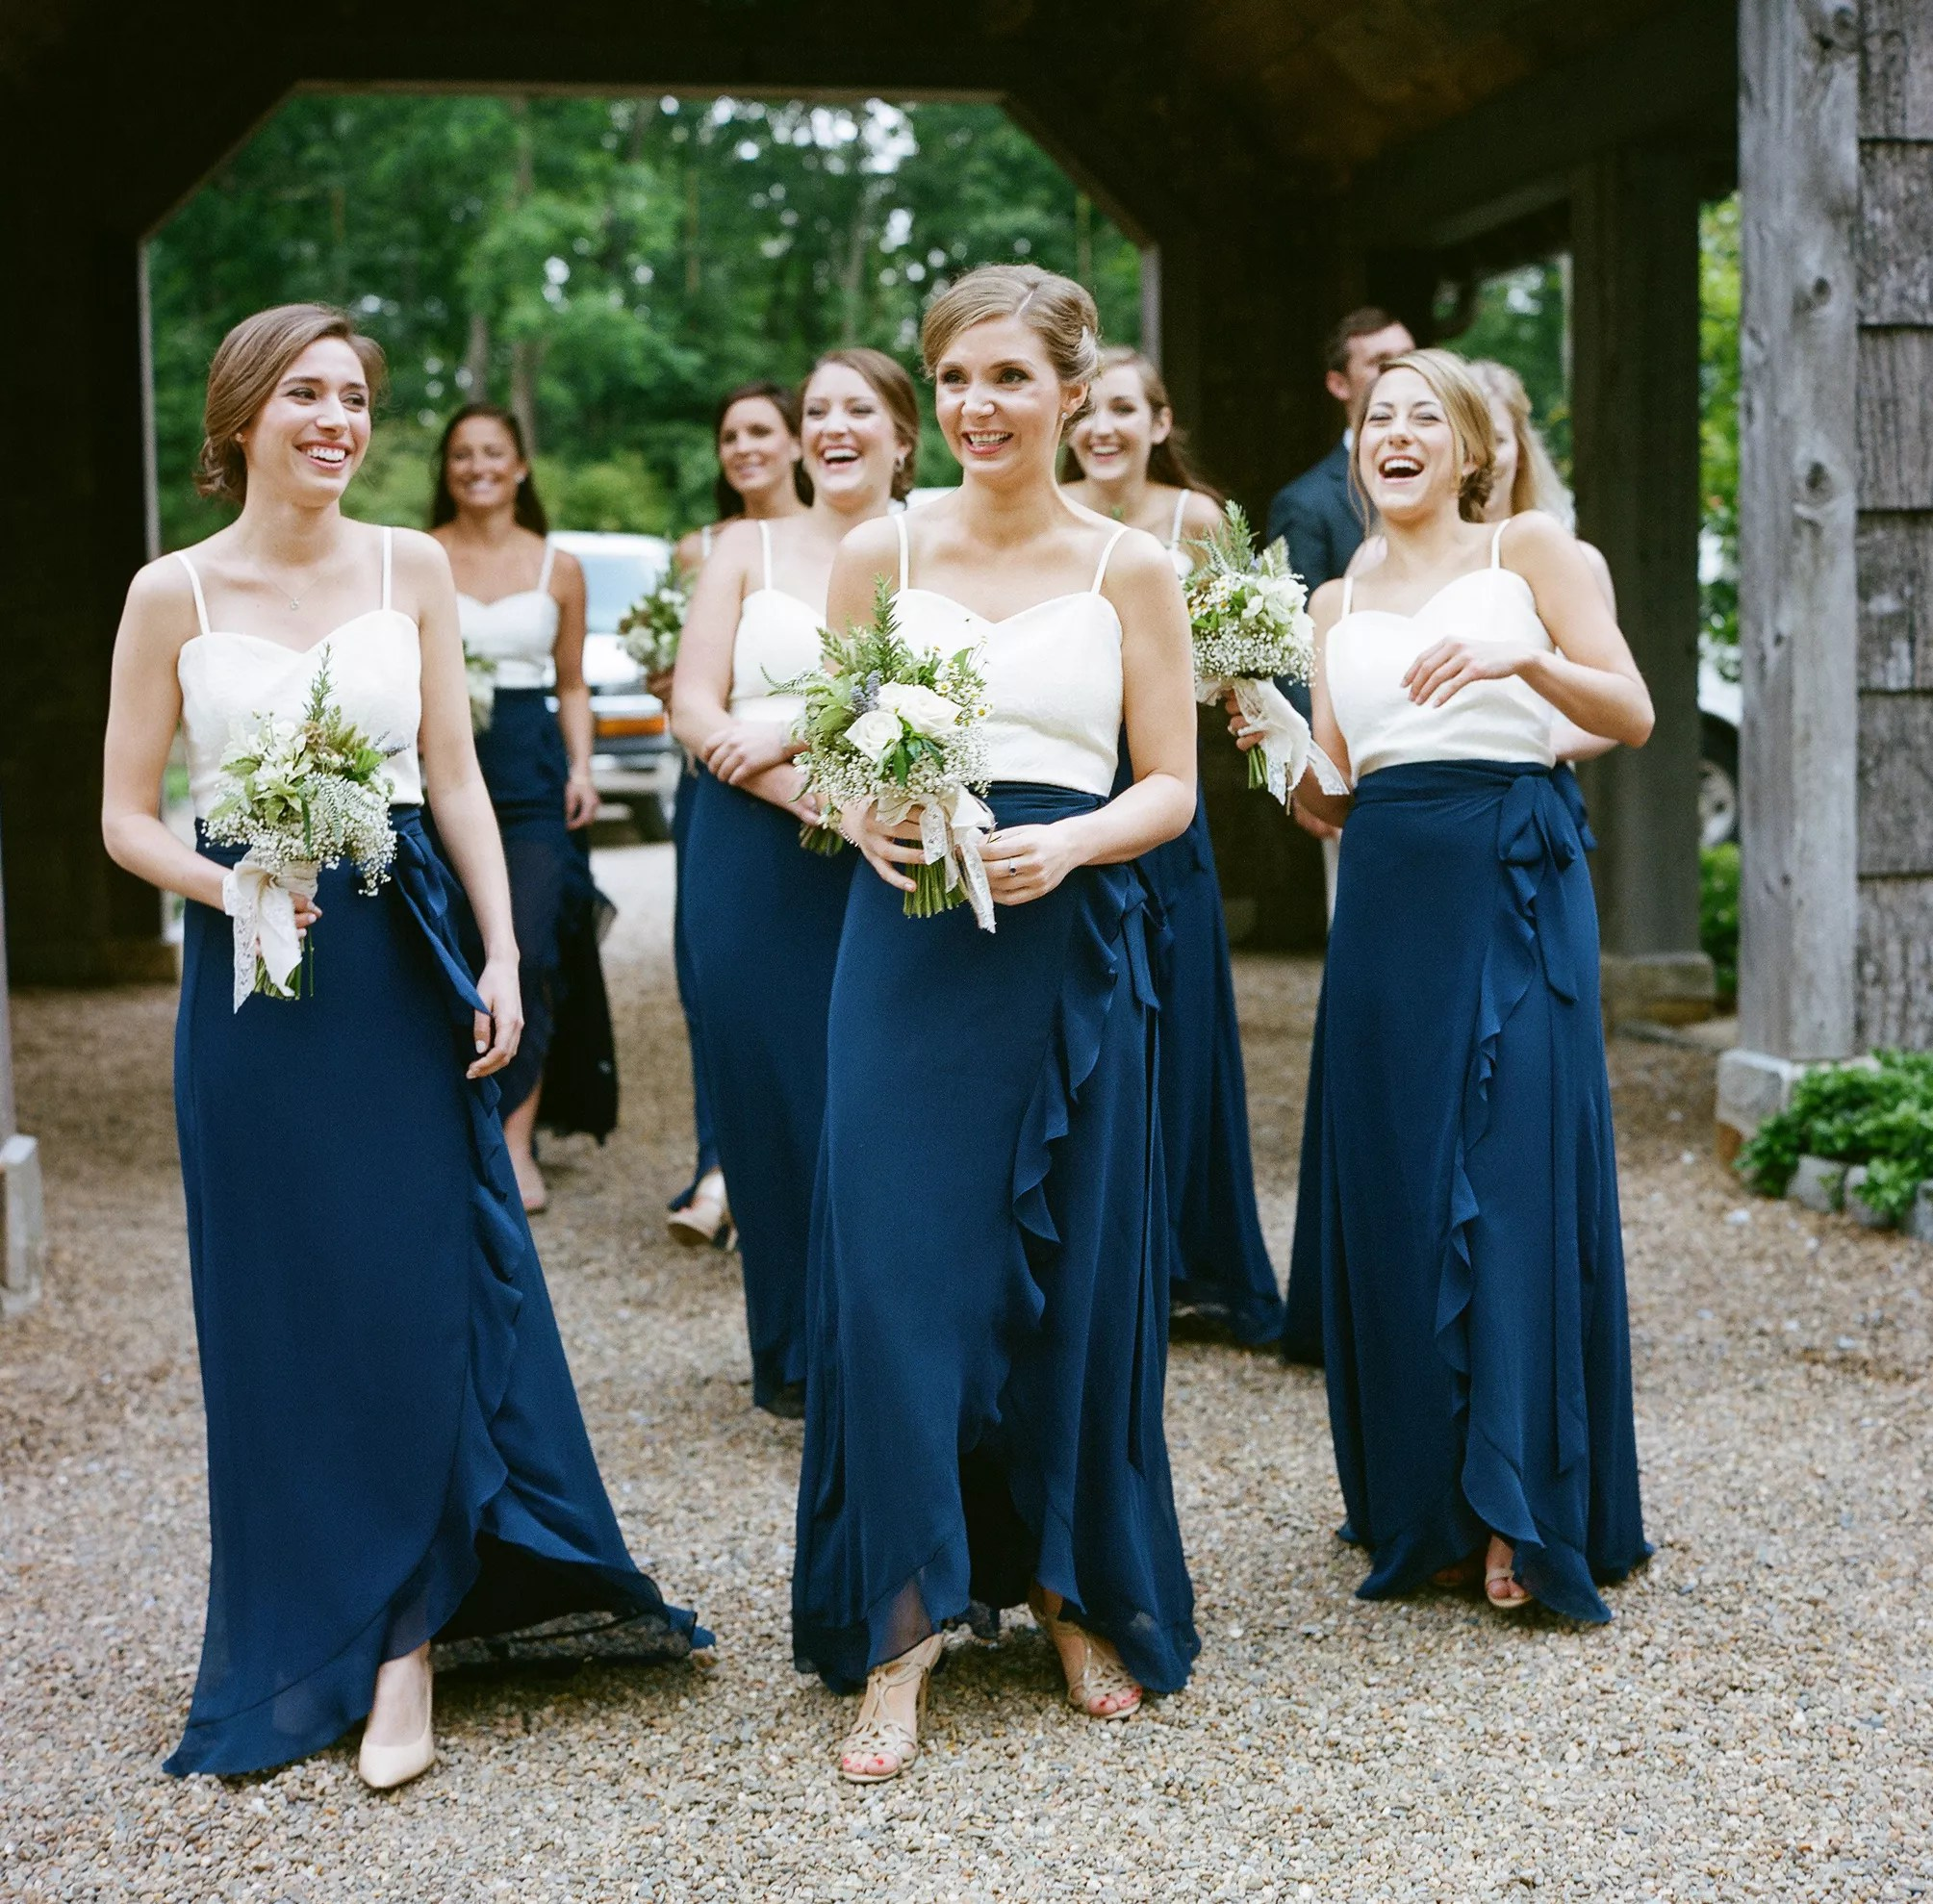 blue bridesmaid dresses photos navy dresses for weddings Two Piece Navy and White Joanna August Bridesmaid Dresses